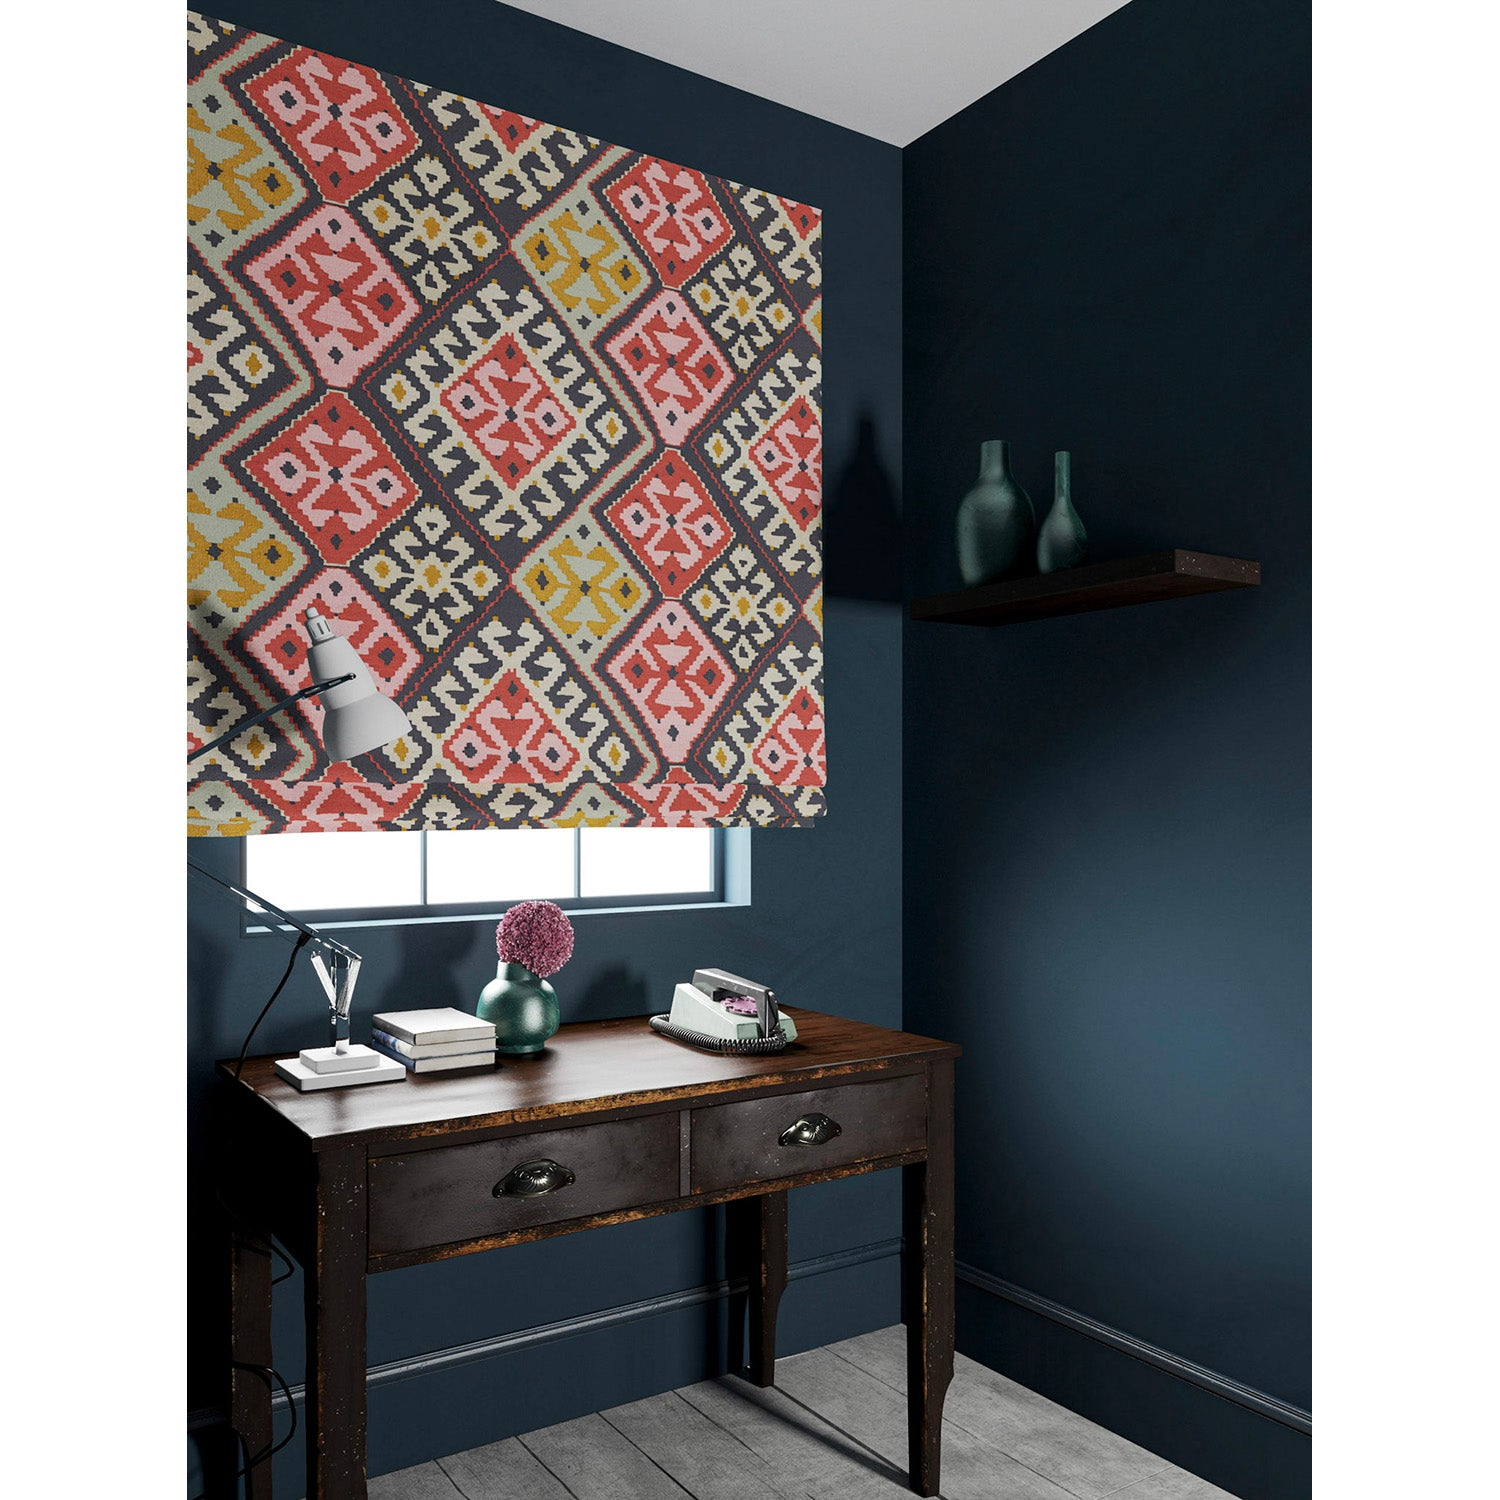 Velvet blind in a velvet fabric with stain resistant finish and kilim design in terracotta tones